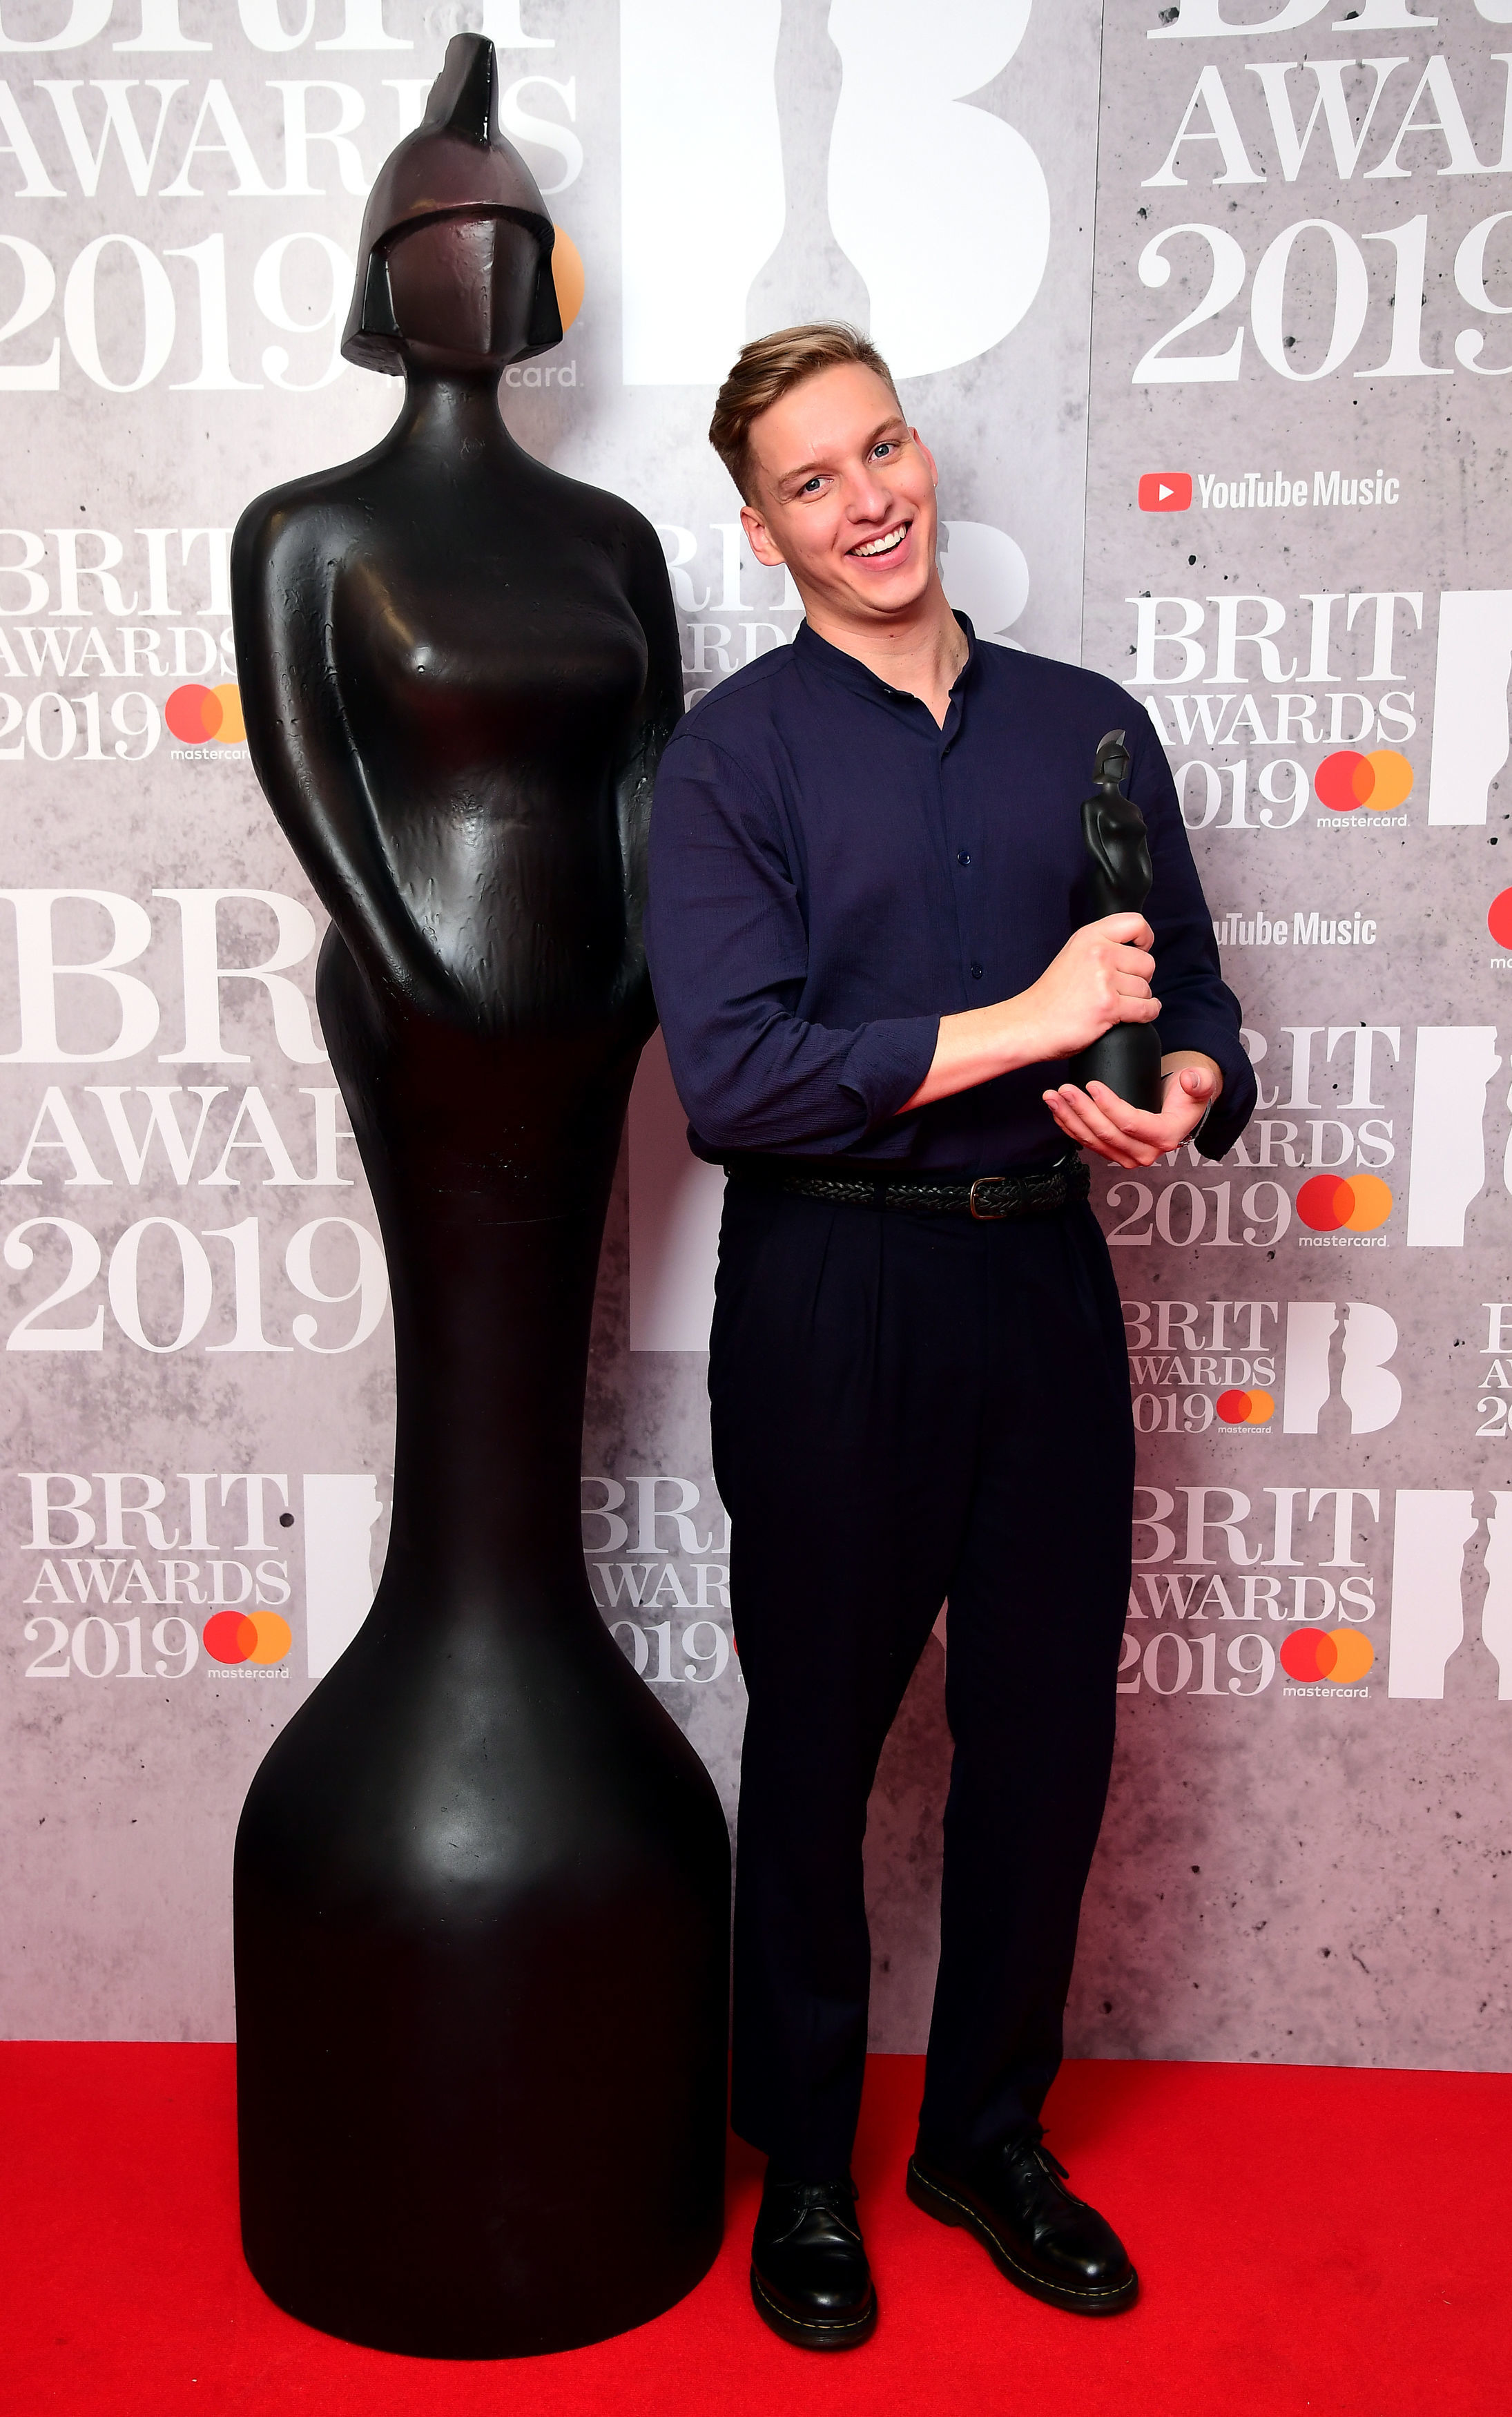 George Ezra with his Best British Male Solo Artist Brit Award